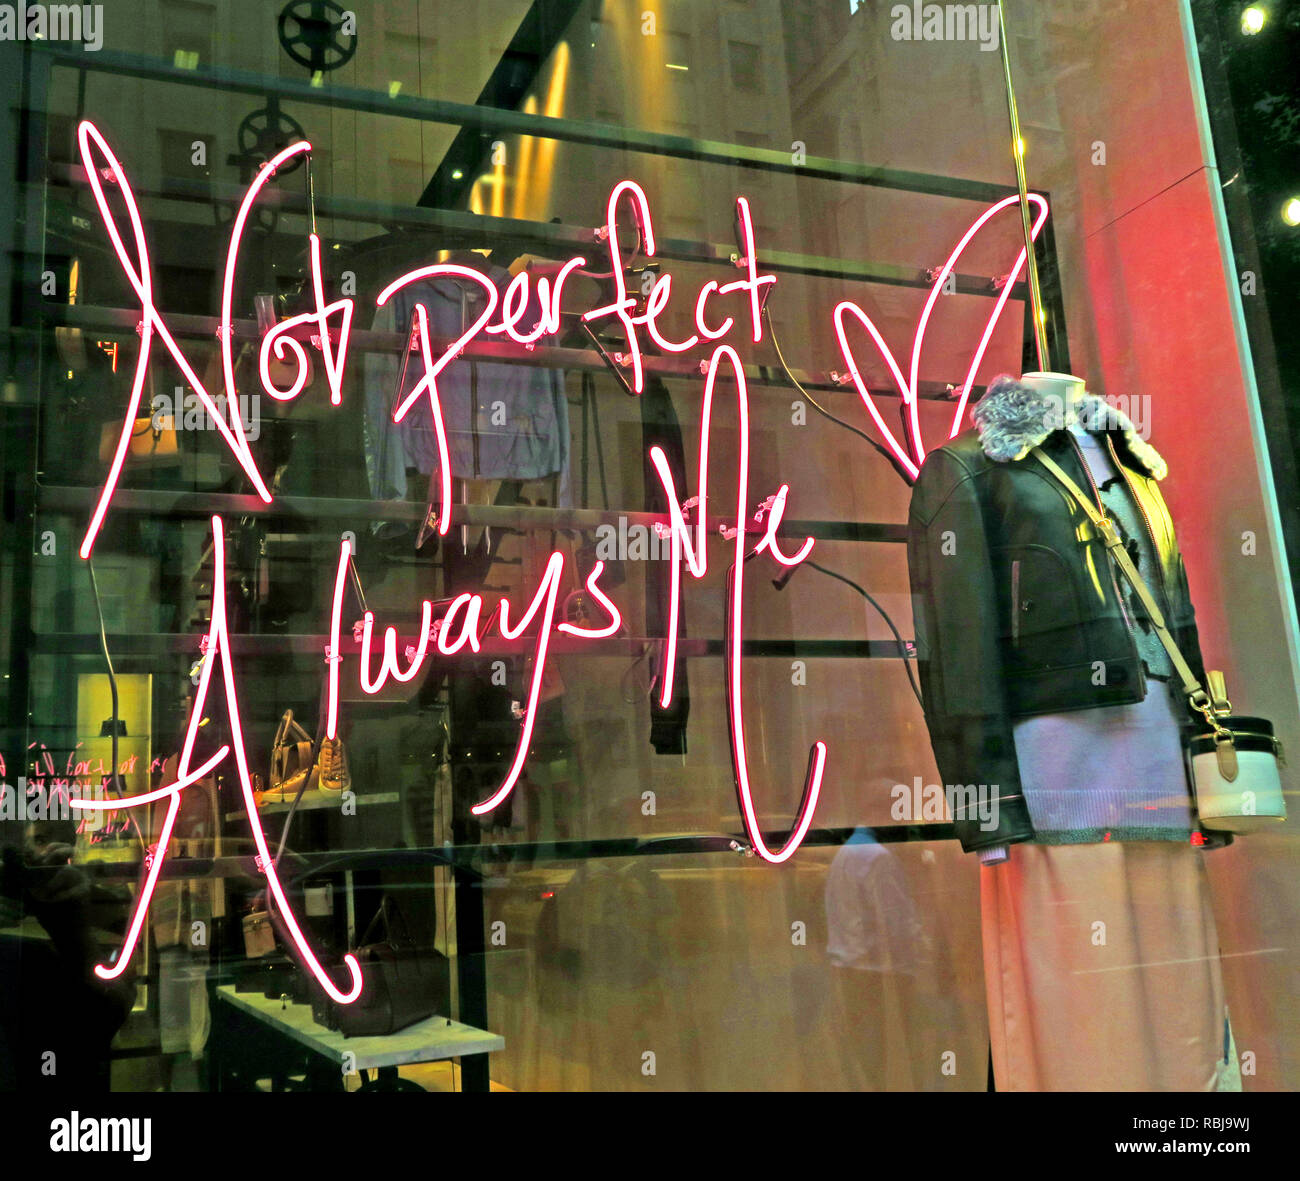 Not Perfect Always Me sign, Selena Gomez collection, In A Coach Store, New York City, NY, USA - Stock Image